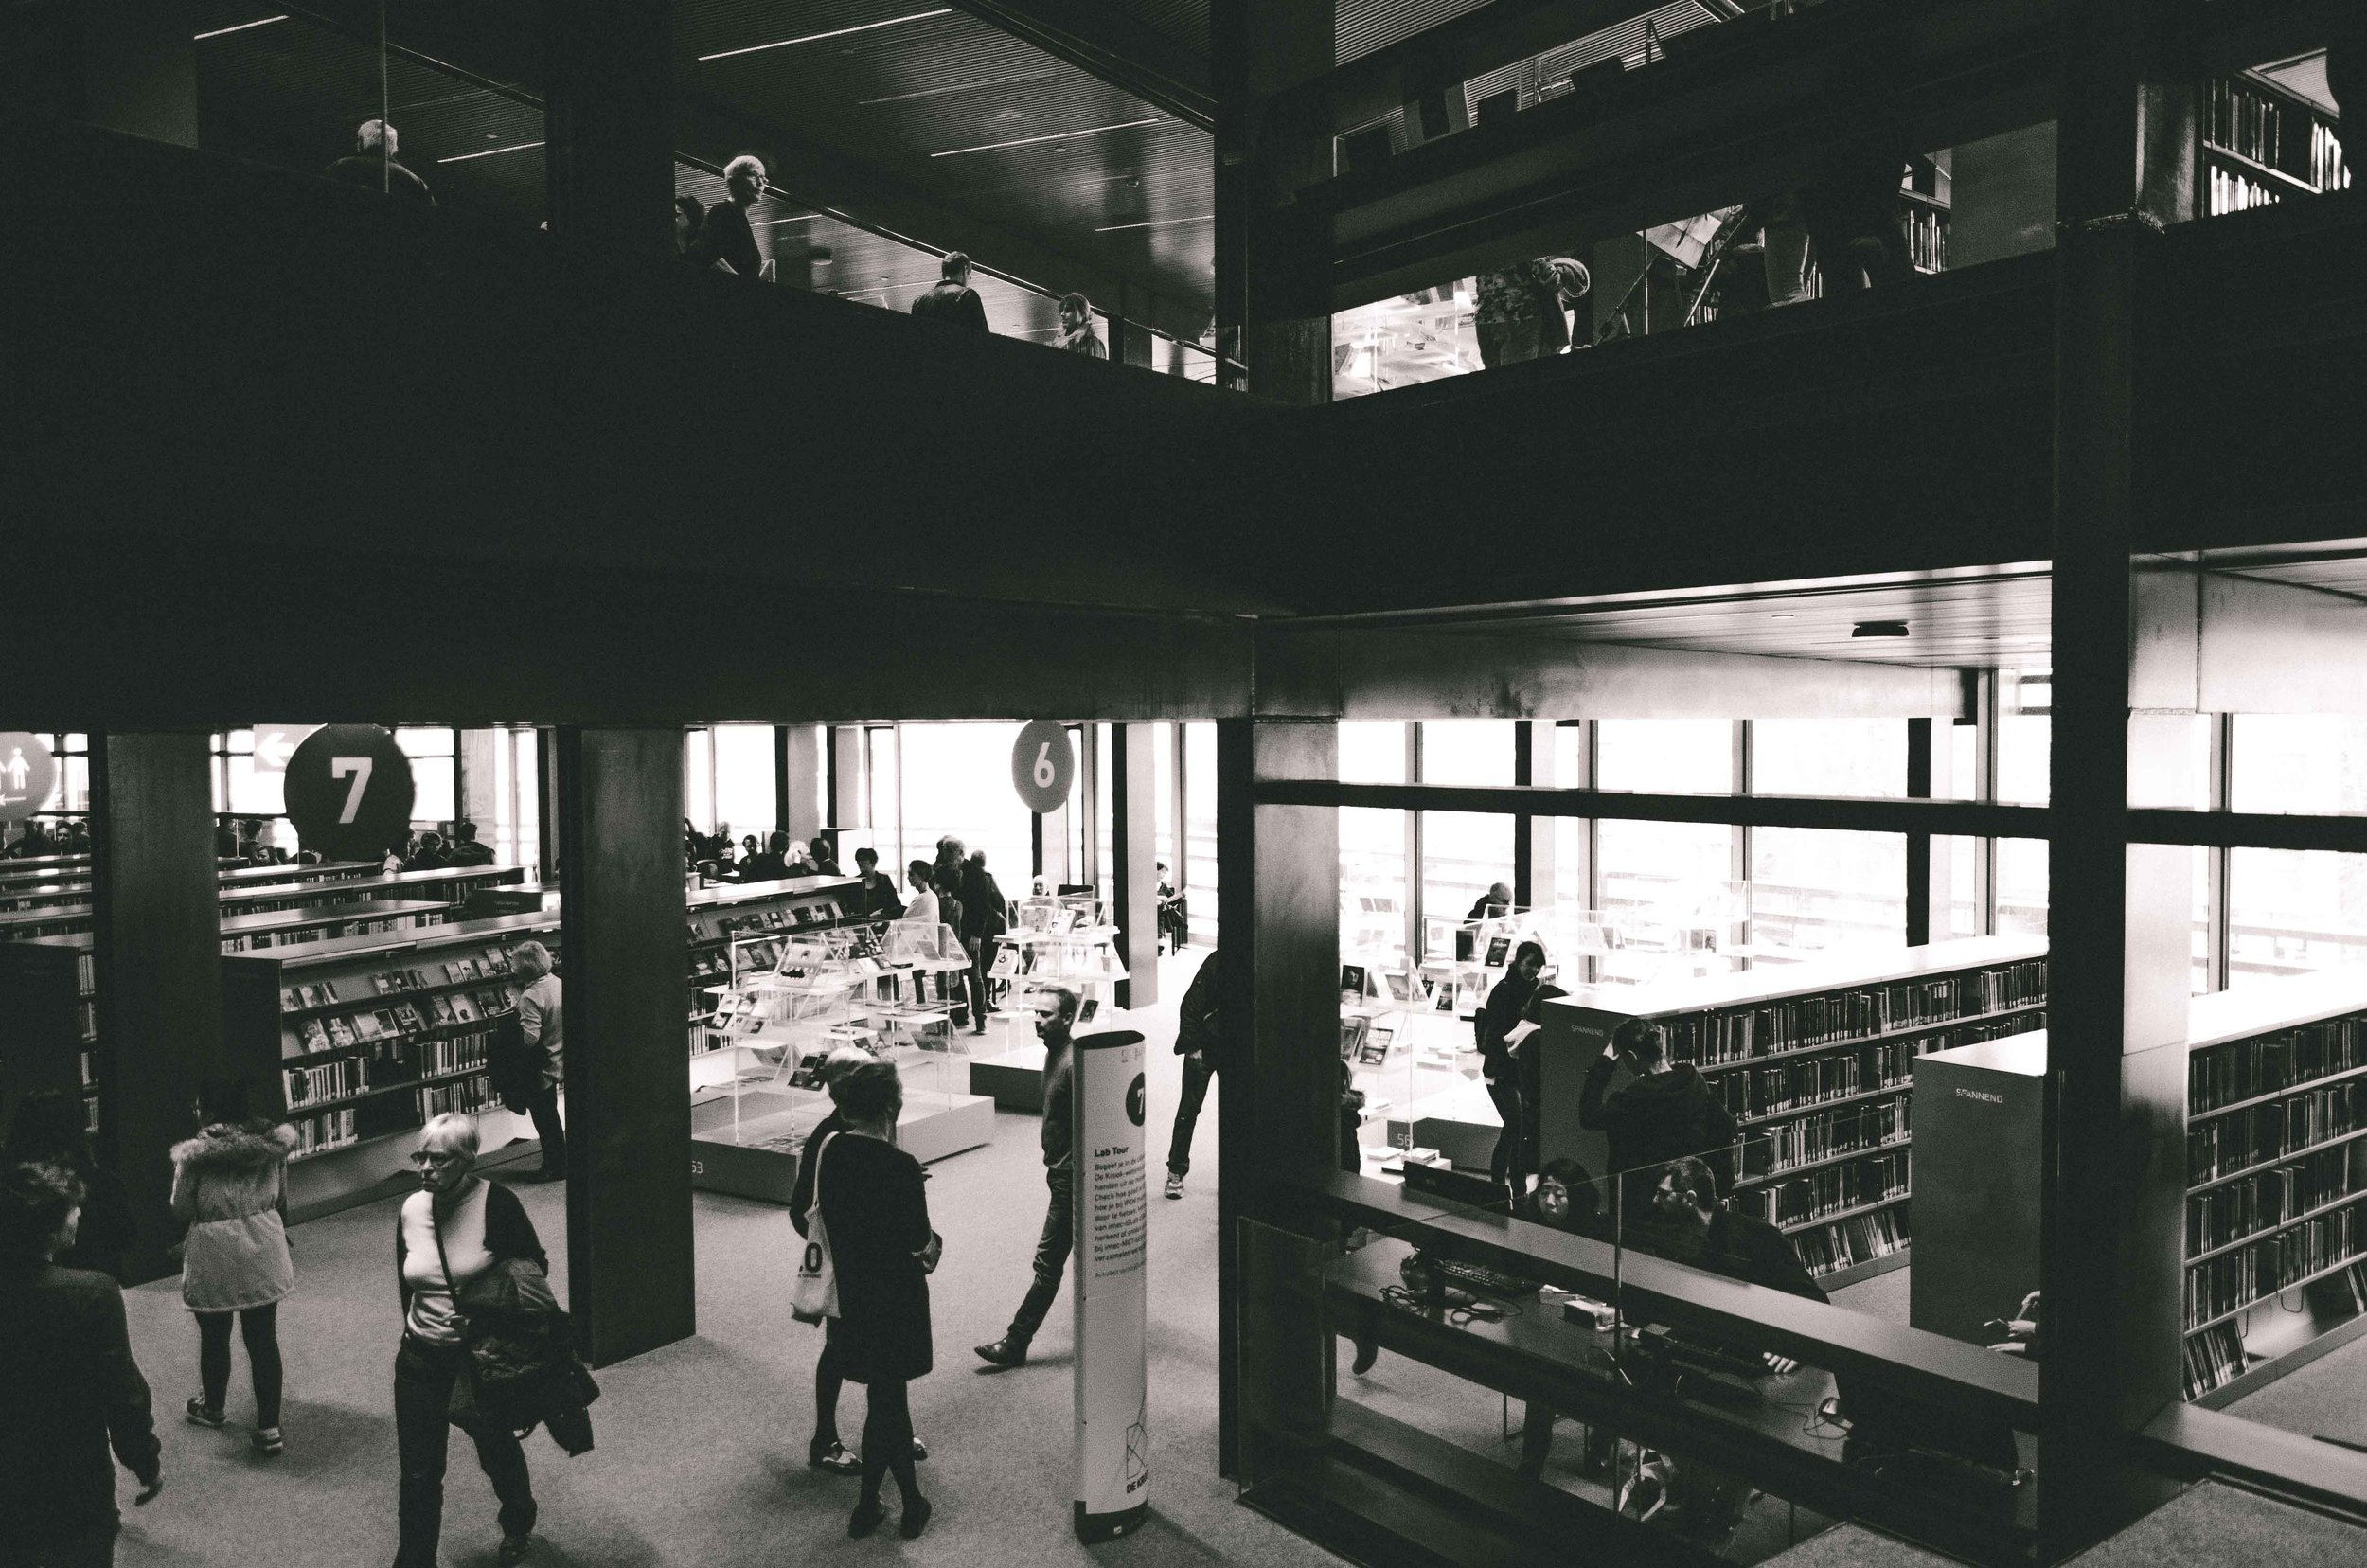 Ghent's new library - De Krook - opened a few days after I arrived